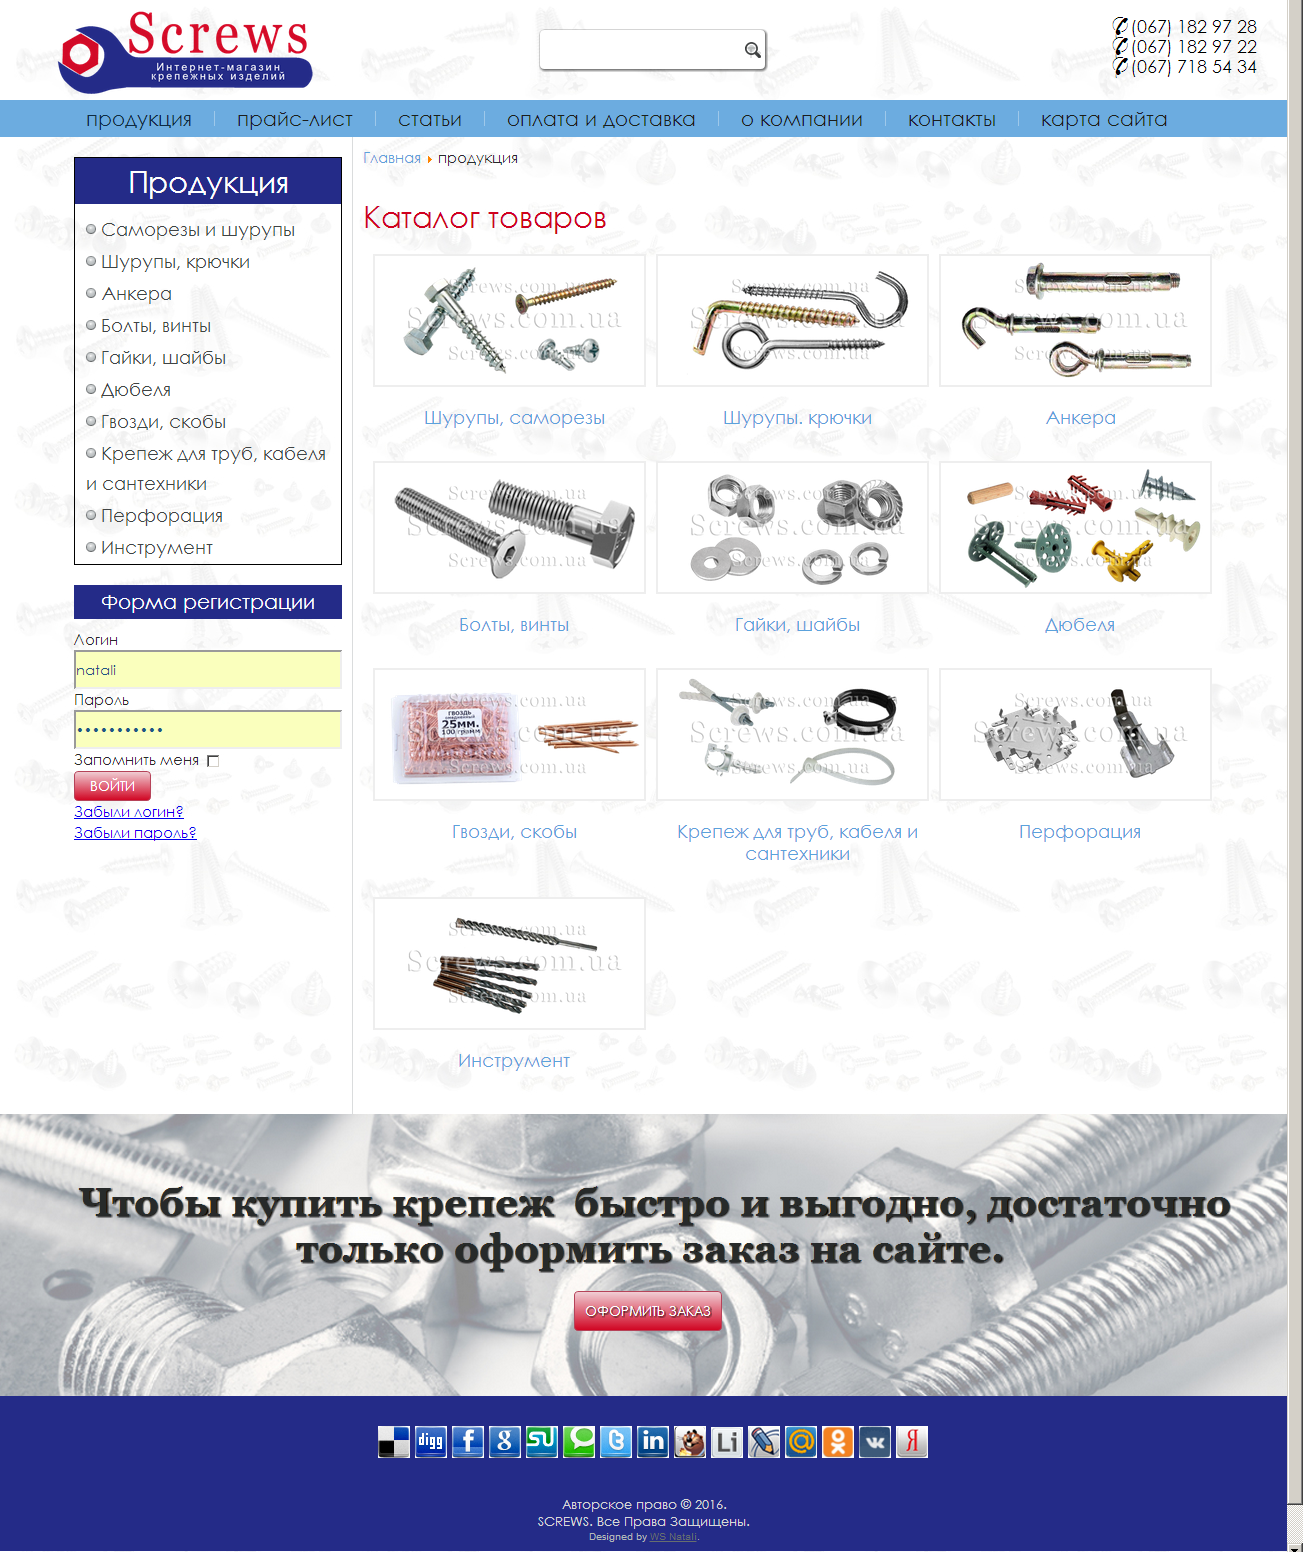 screws-product-categories